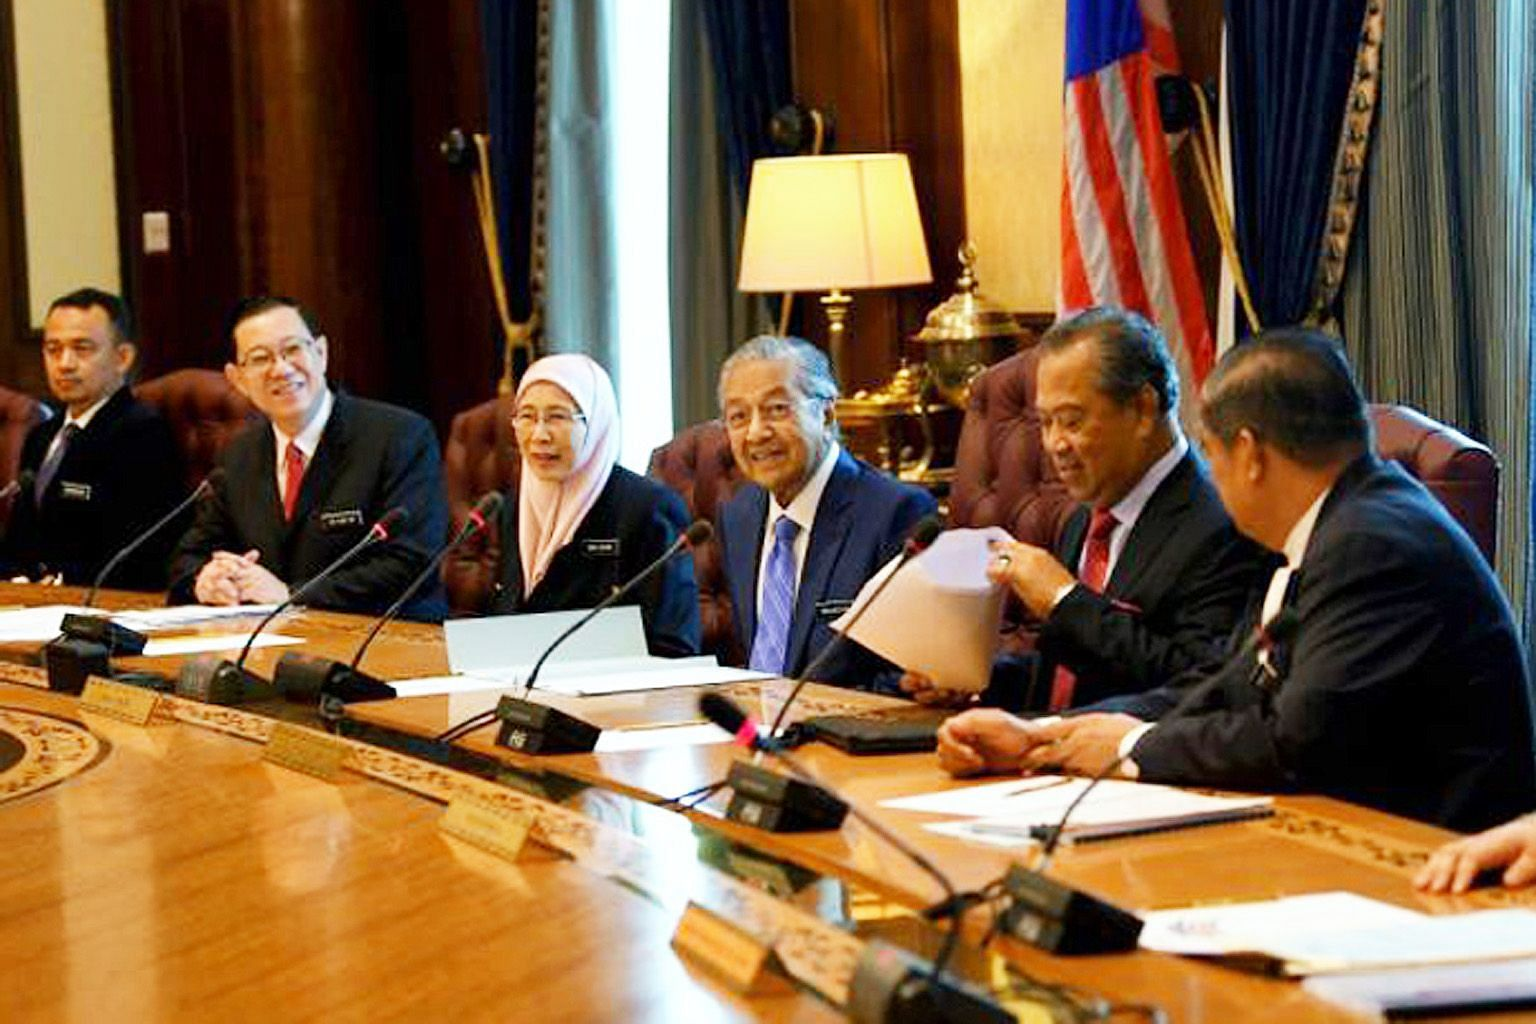 Prime Minister Mahathir Mohamad (centre) with other Cabinet members (from far left) Education Minister Maszlee Malik, Finance Minister Lim Guan Eng, Deputy Prime Minister Wan Azizah, Home Minister Muhyiddin Yassin and Defence Minister Mohamad Sabu. P